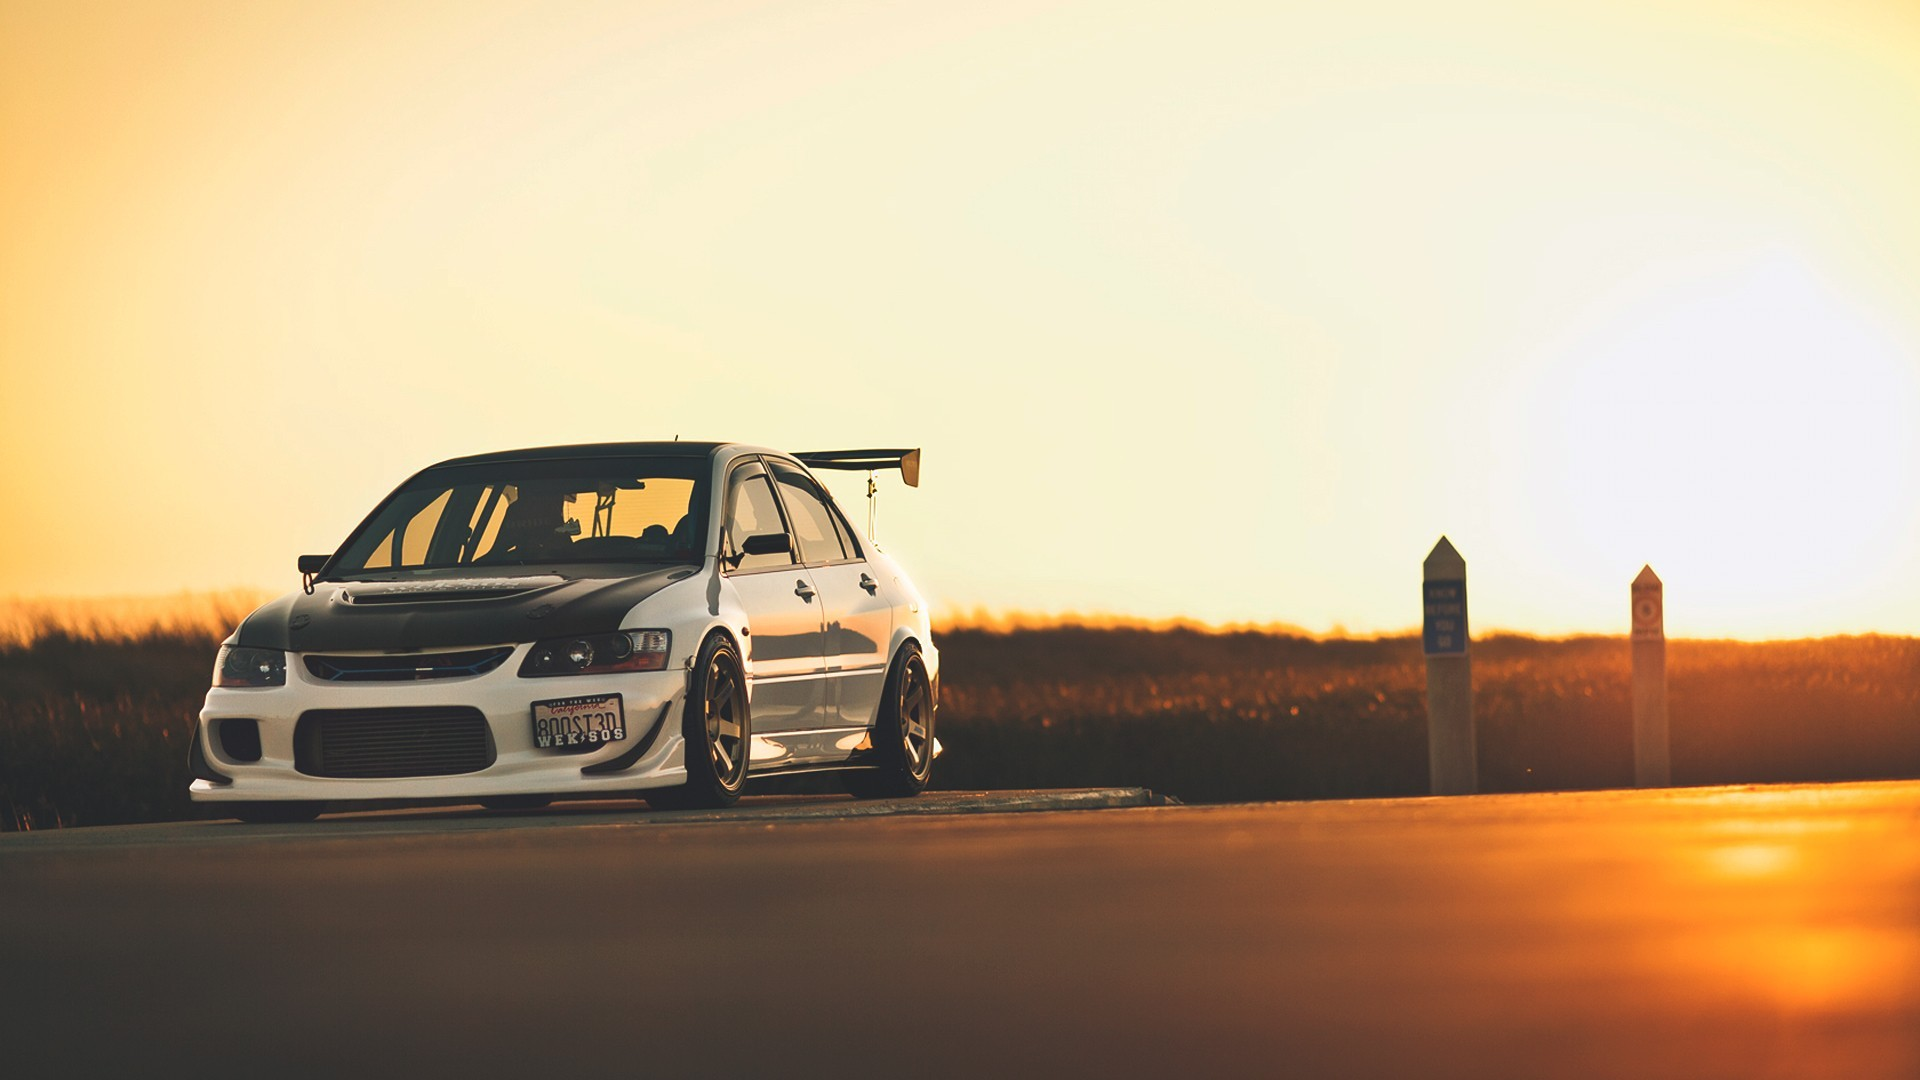 car Sunset Mitsubishi Evo Wallpapers HD Desktop and Mobile 1920x1080